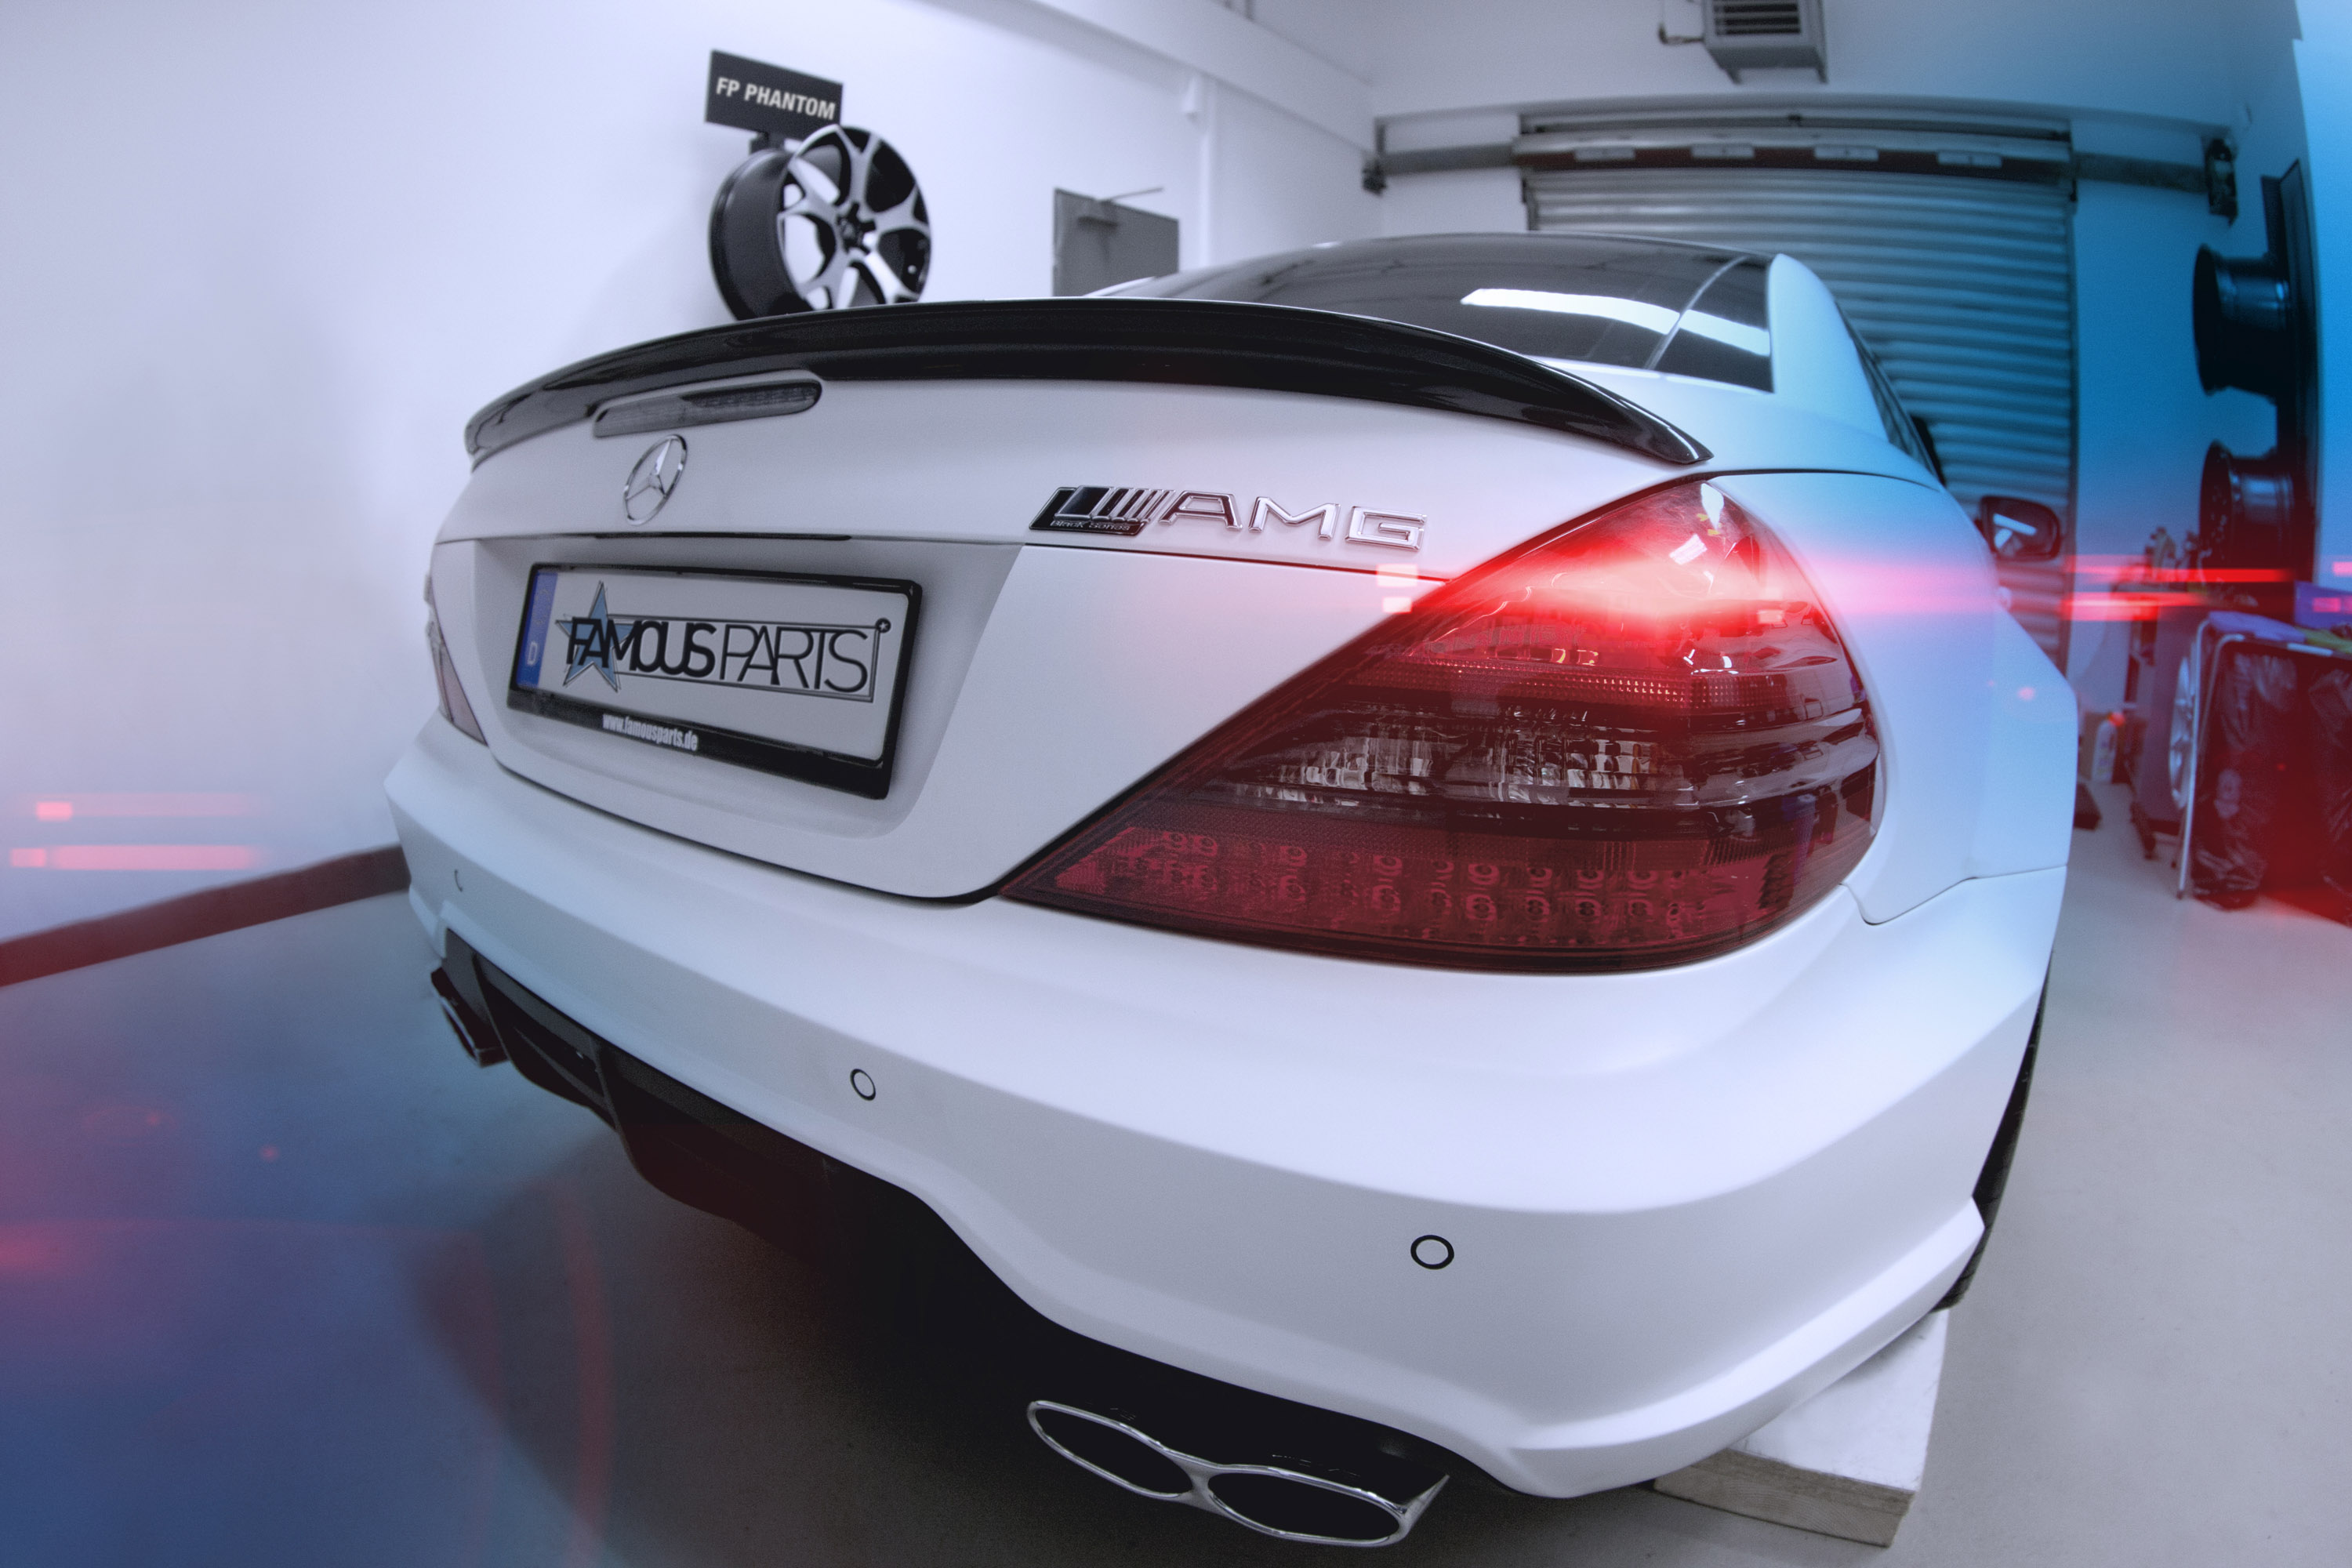 famous parts adss more distinctiveness to mercedes